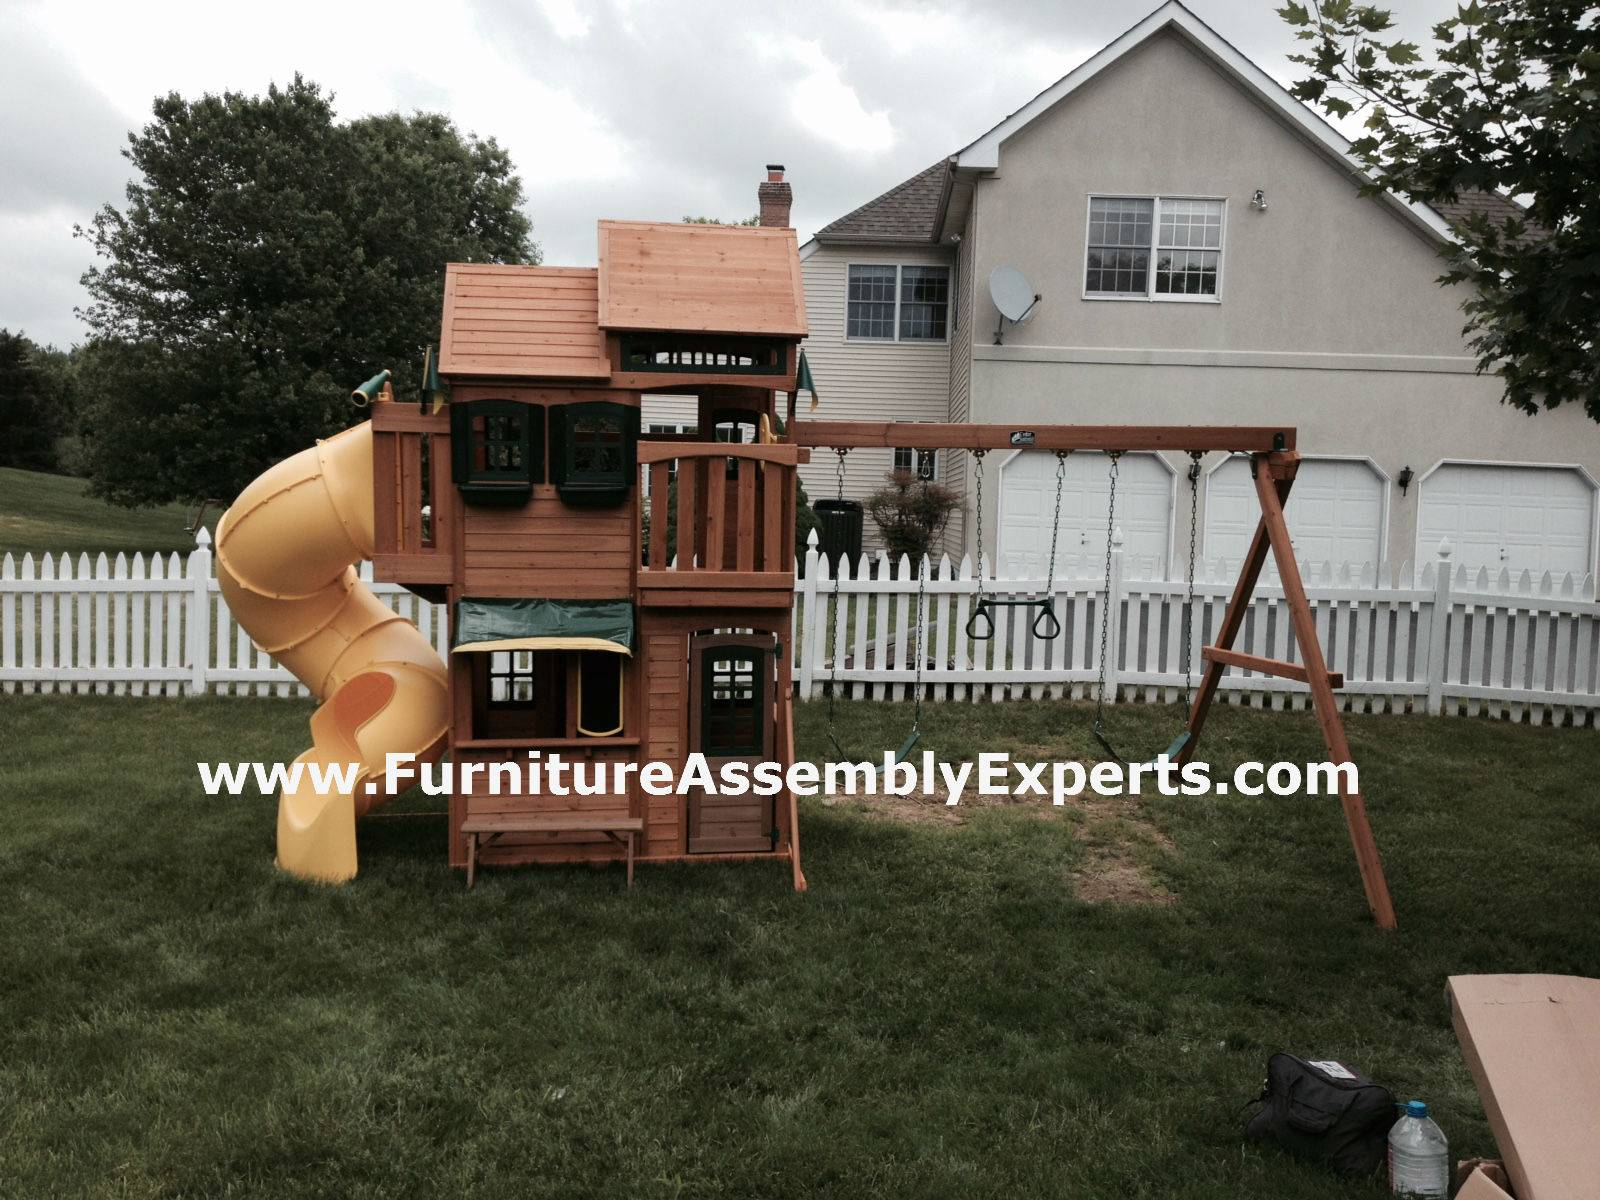 gorilla playset assembly service in silver spring md